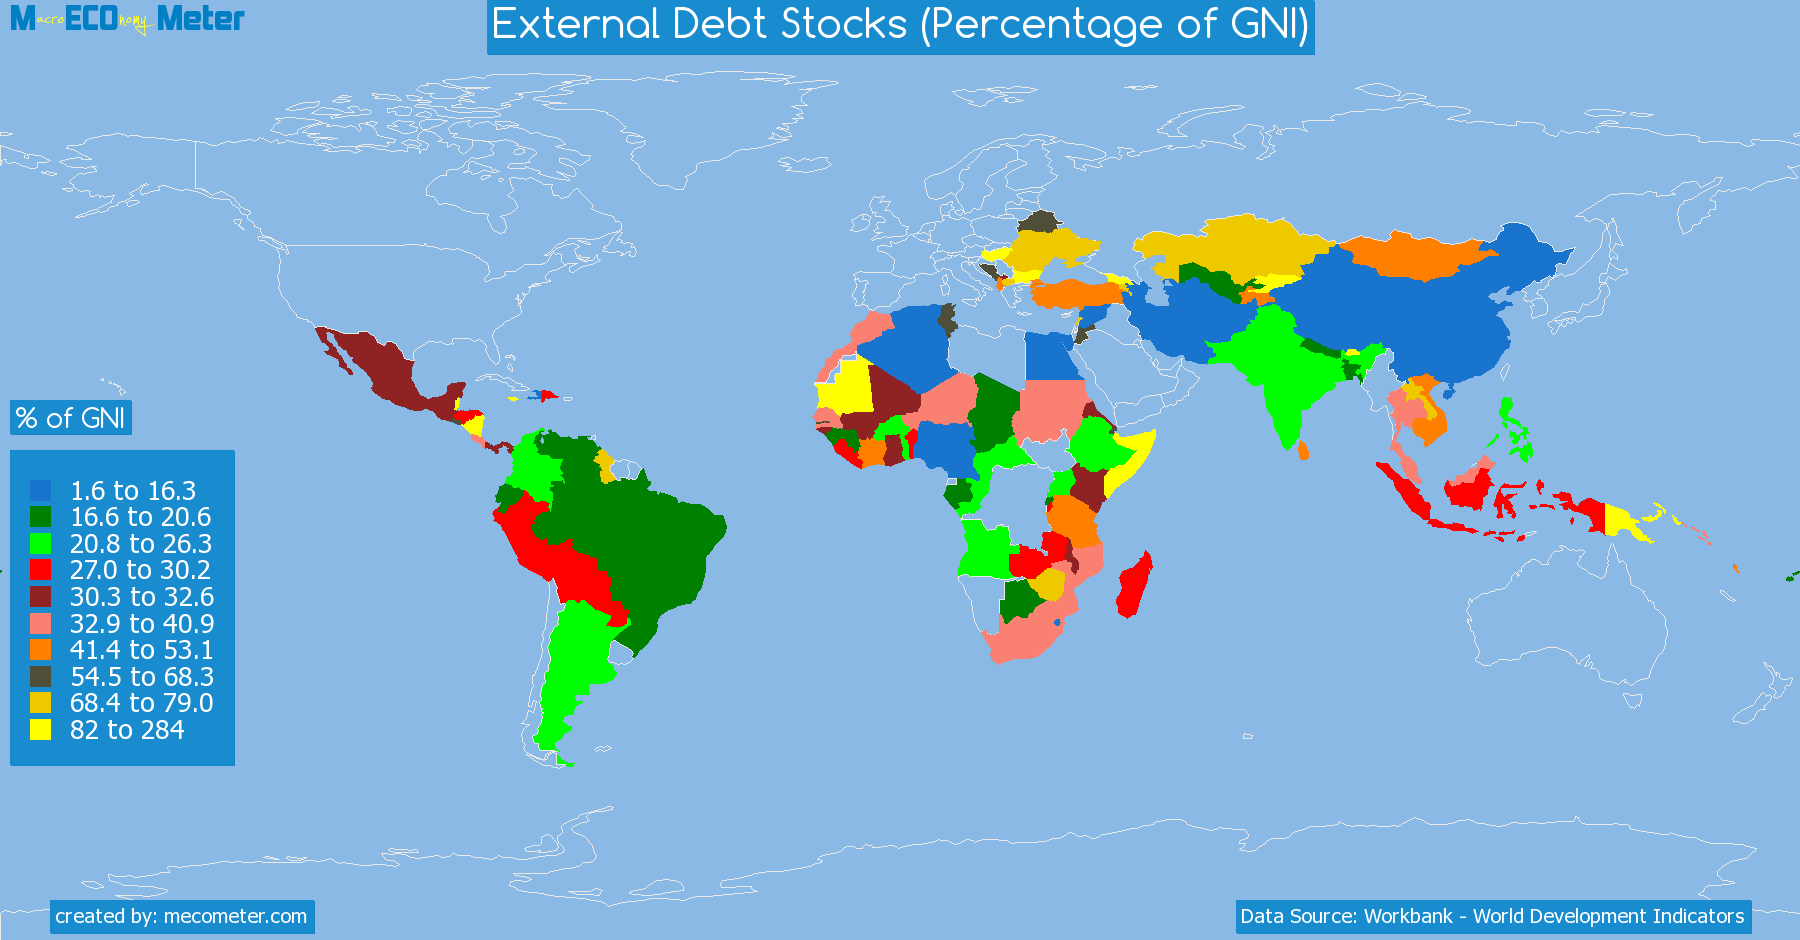 list of countries by External Debt Stocks (Percentage of GNI)